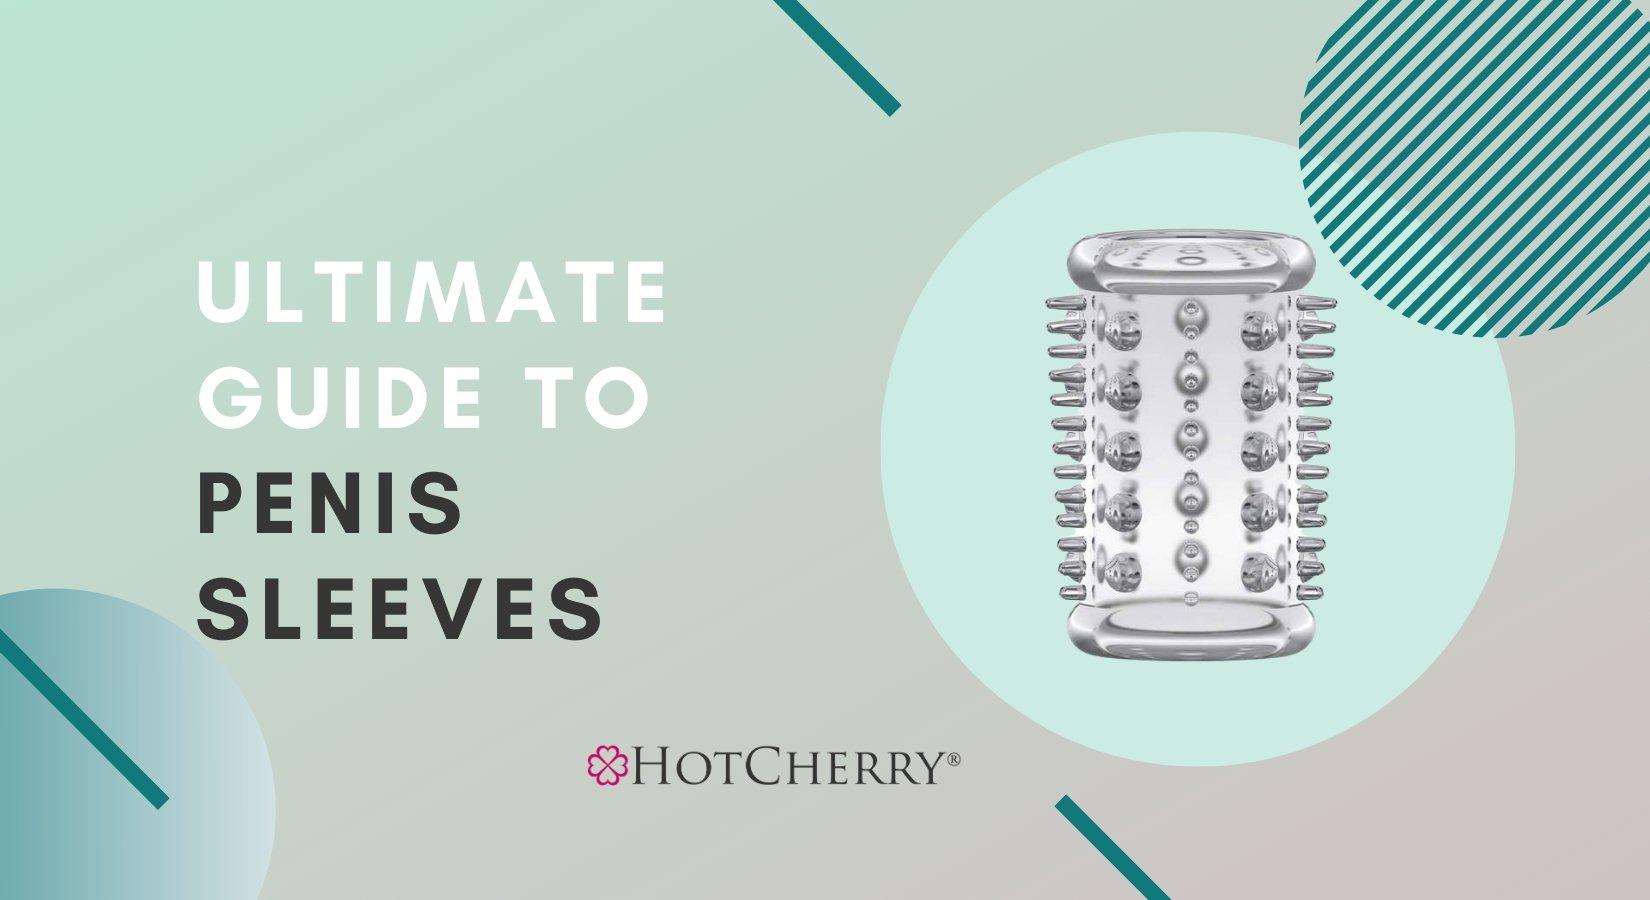 Ultimate Guide to Penis Sleeves